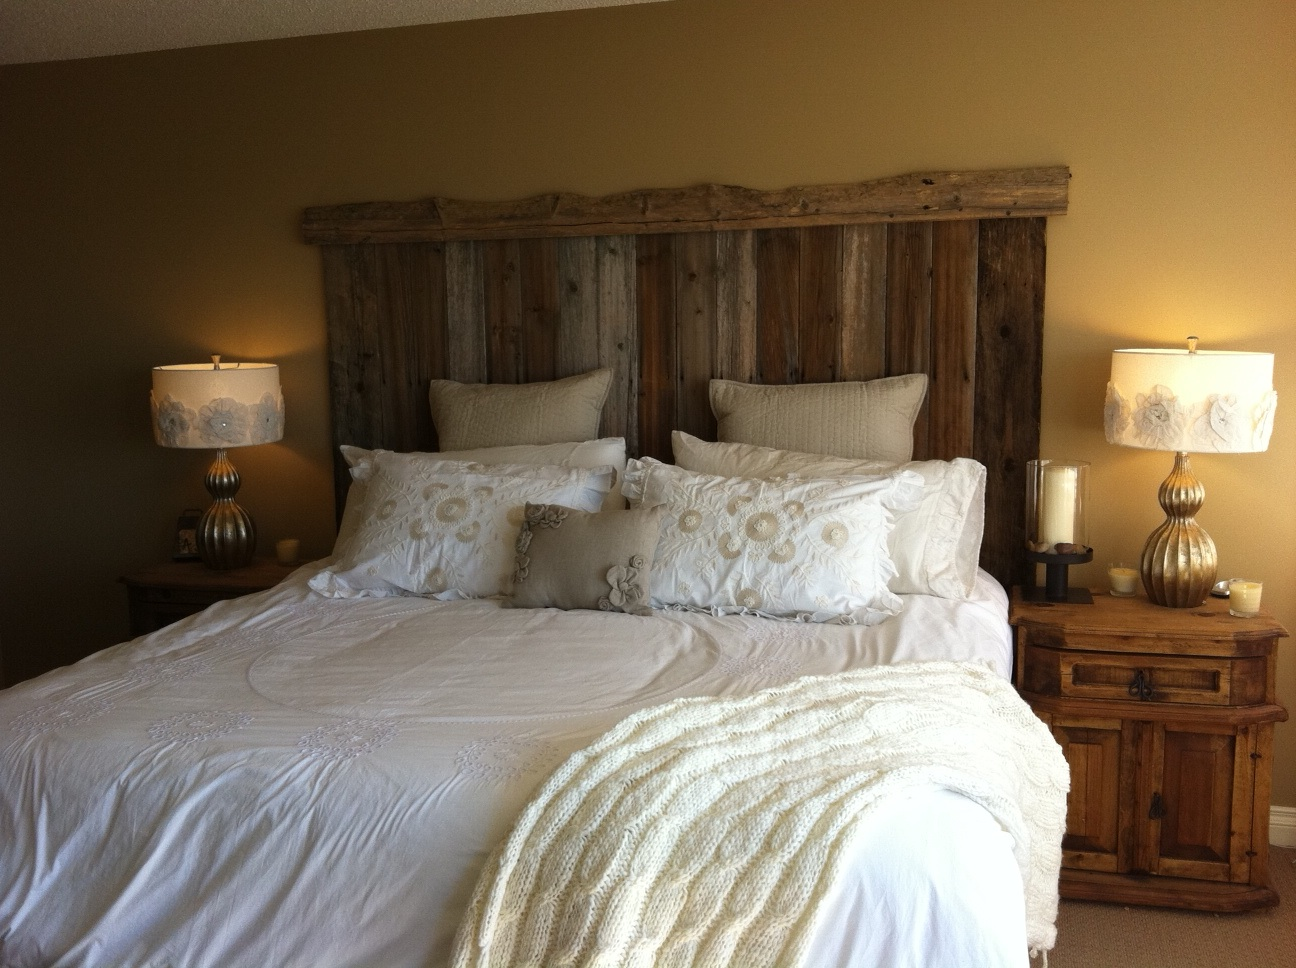 barn board headboard twobertis